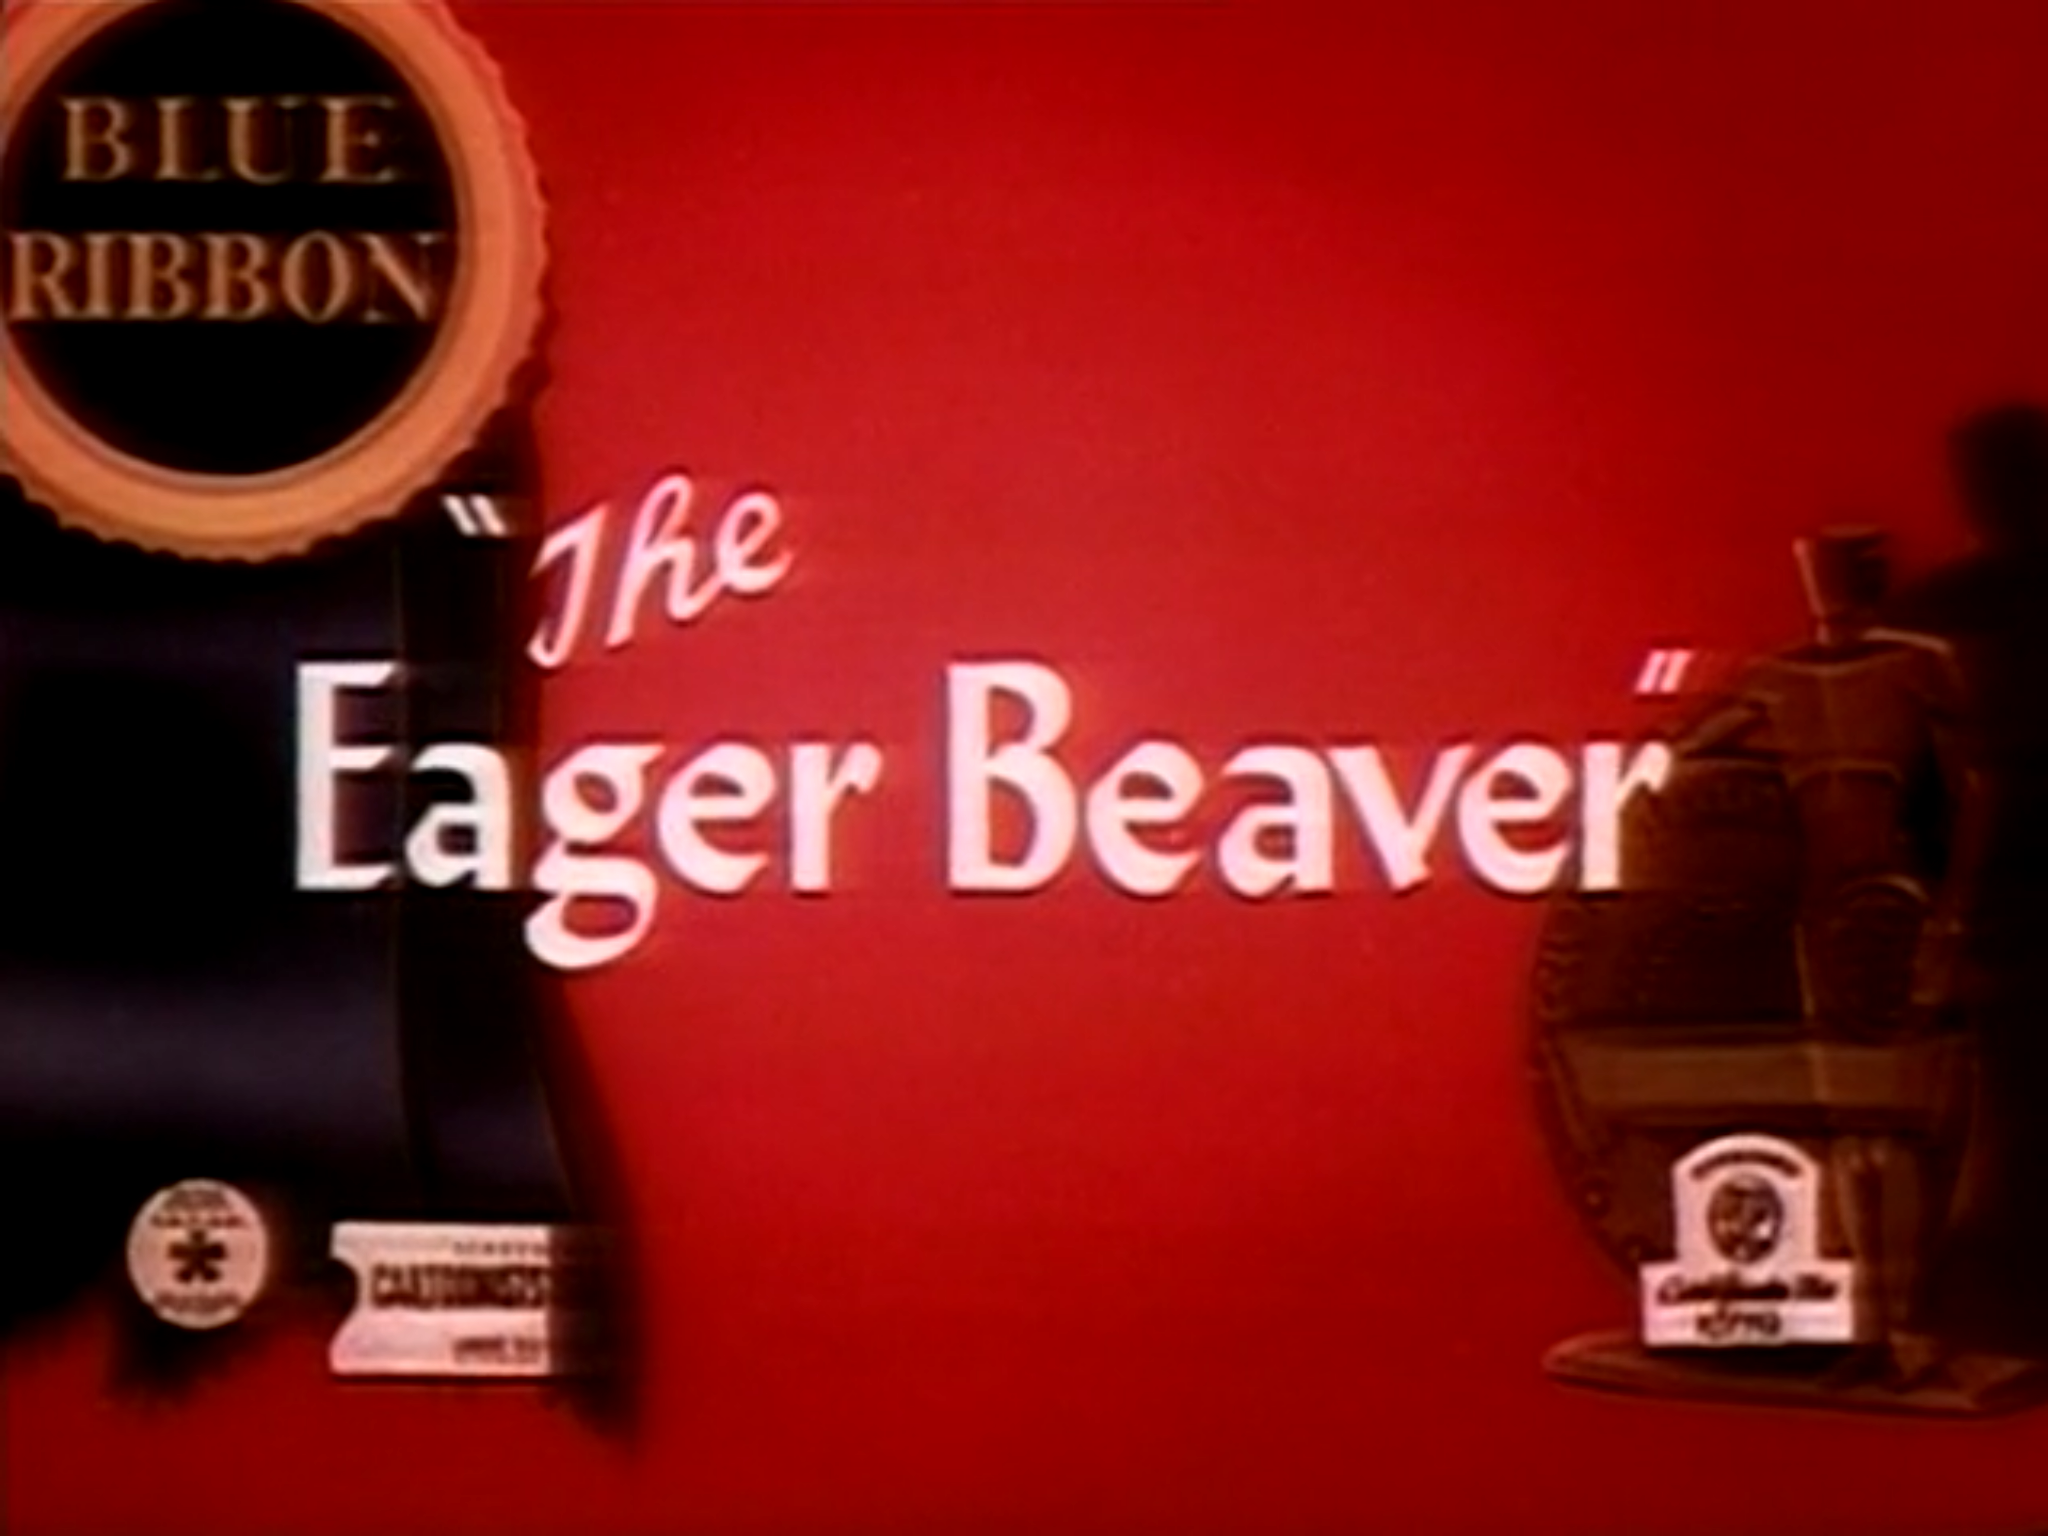 The Eager Beaver